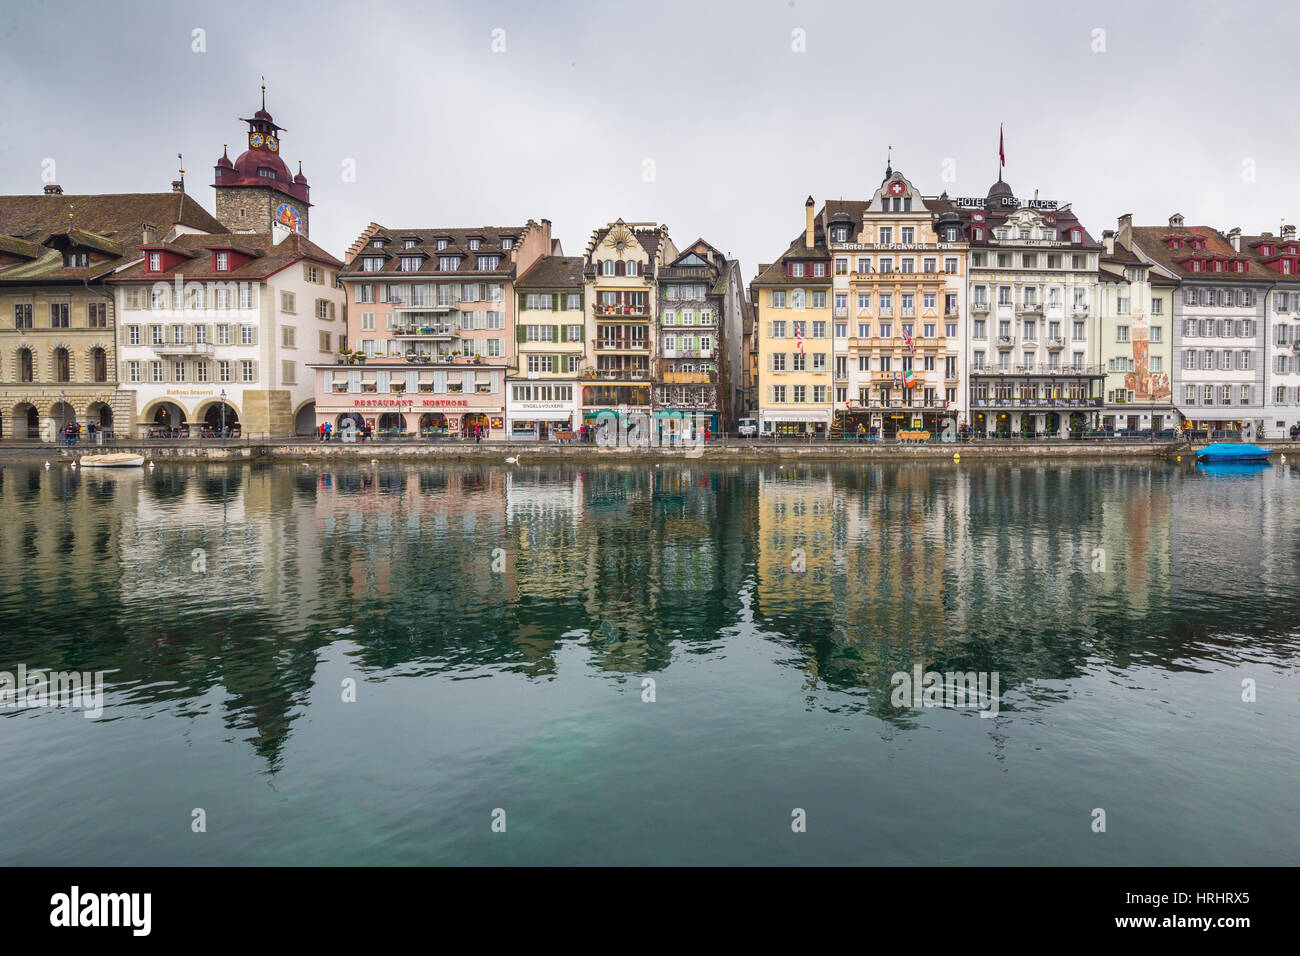 The typical buildings of the old medieval town are reflected in River Reuss, Lucerne, Switzerland - Stock Image